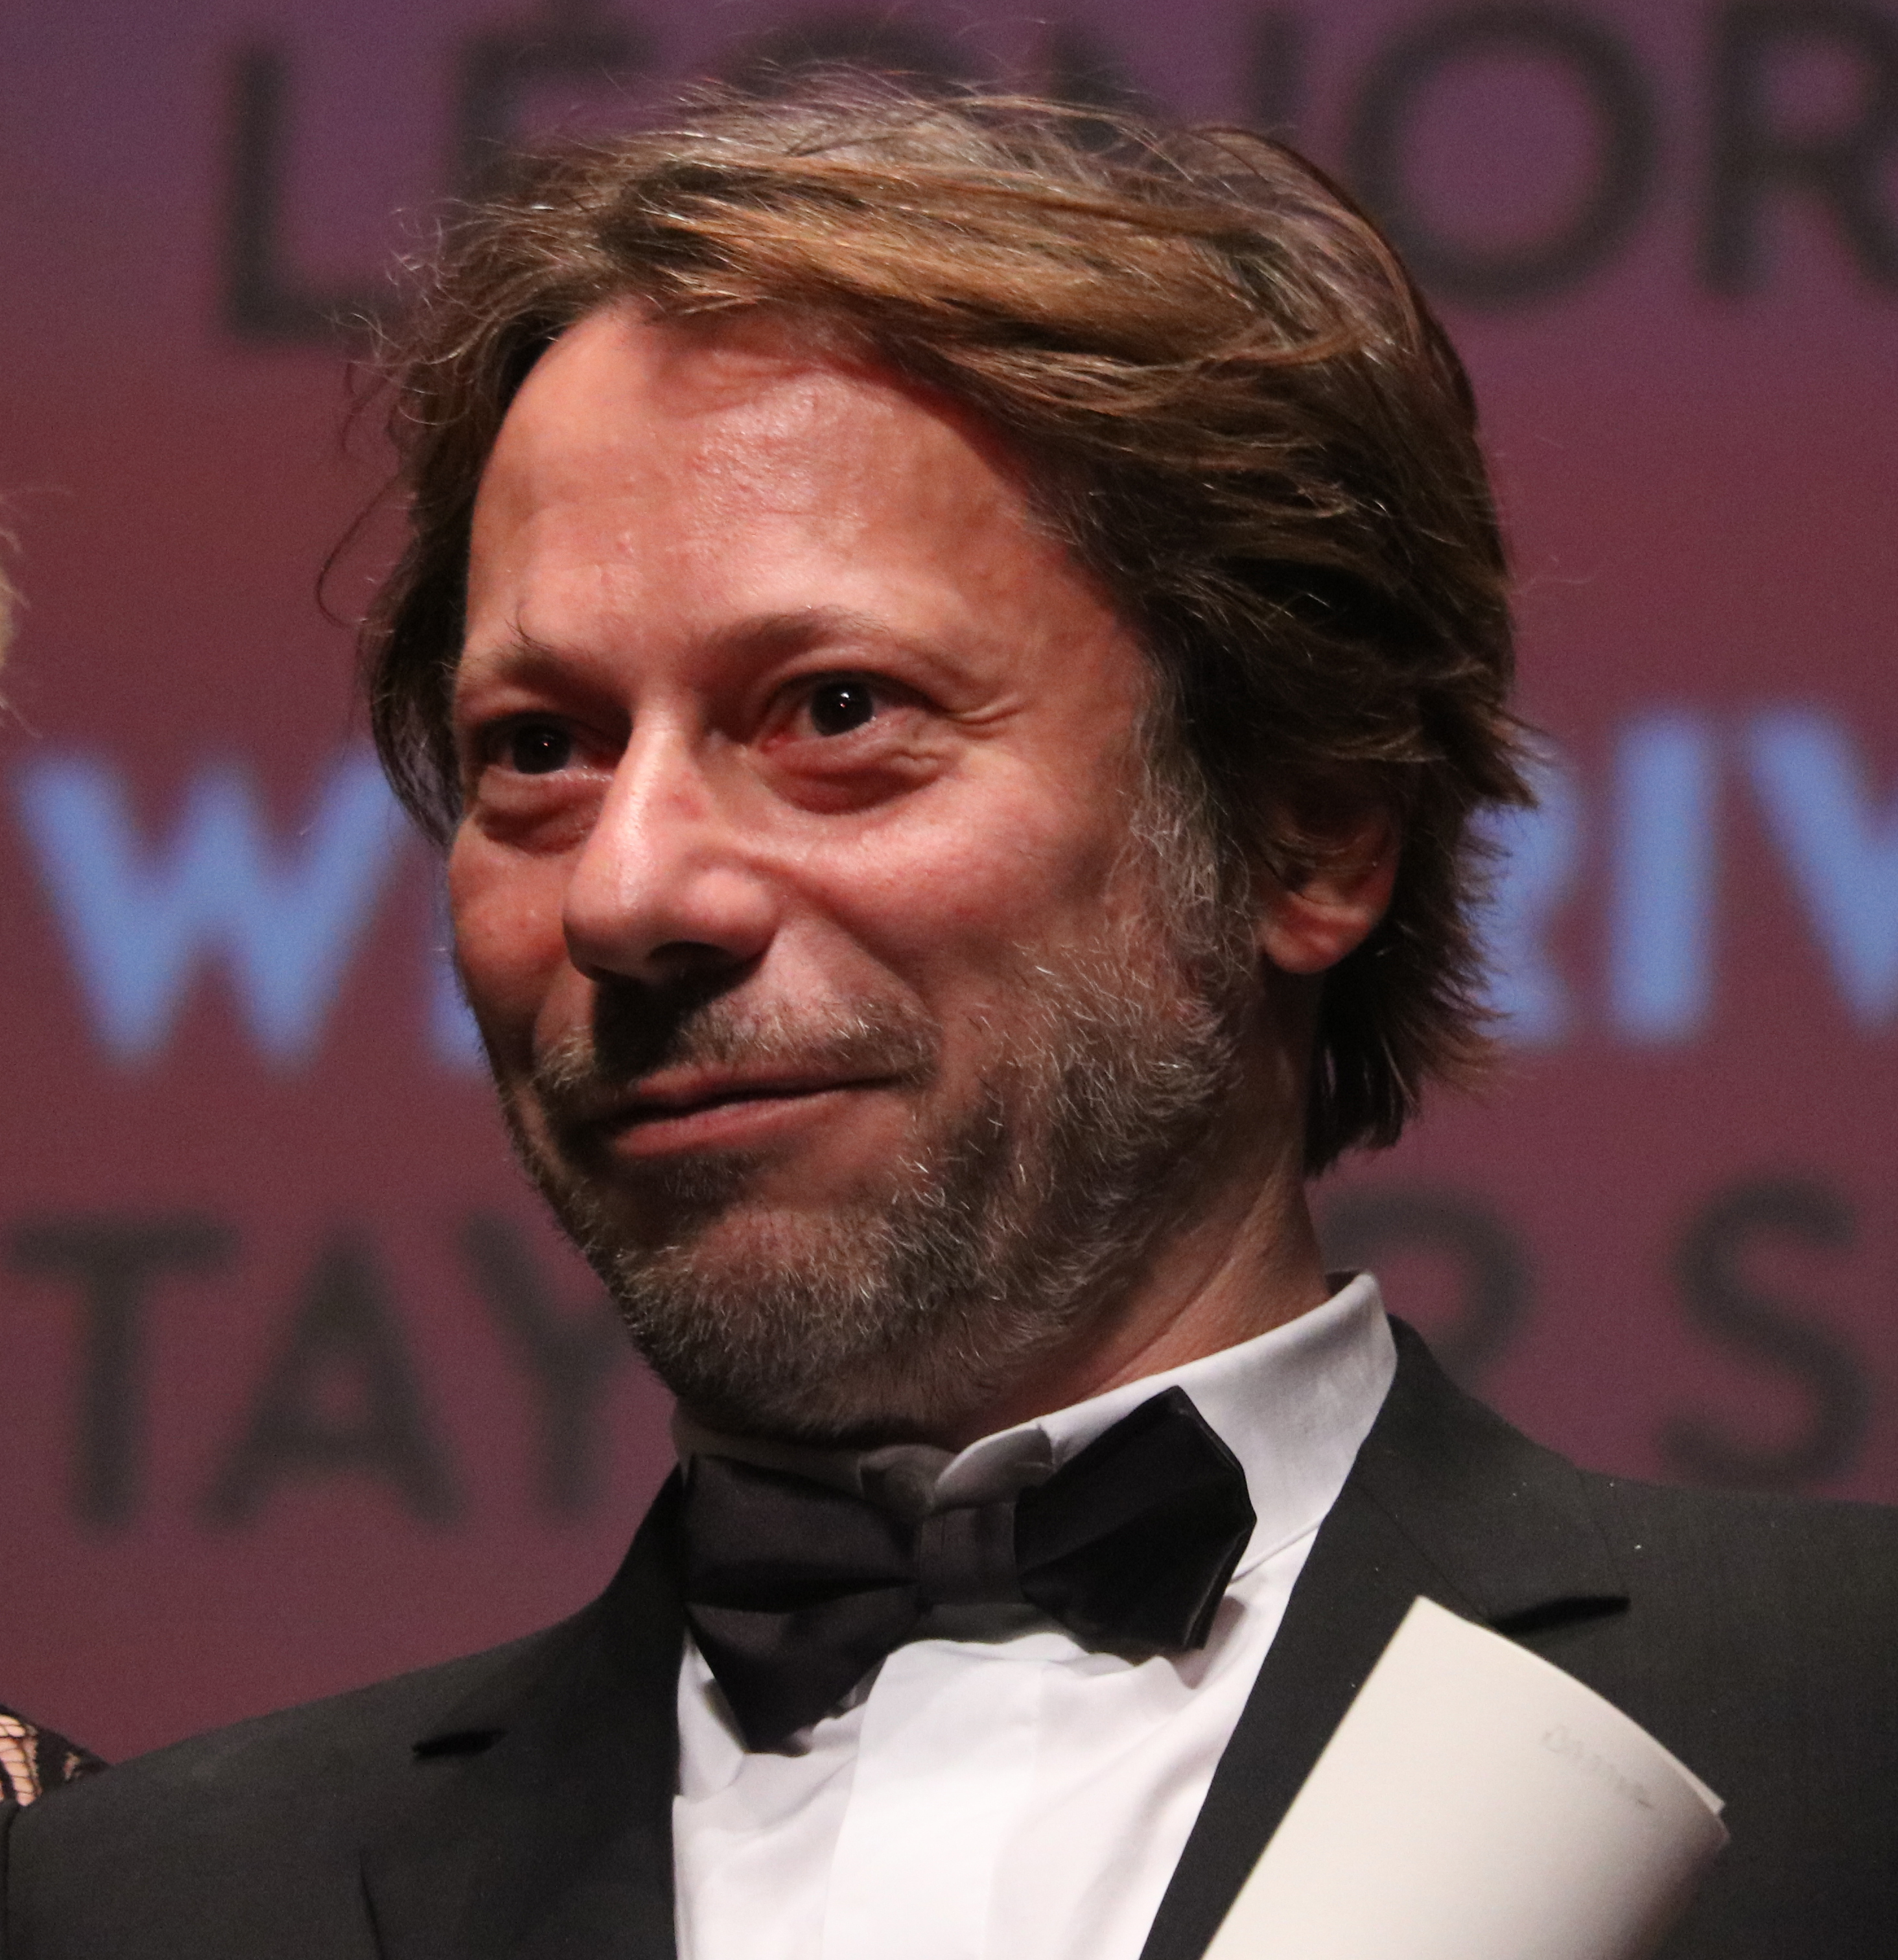 The 52-year old son of father Jacques Amalric and mother Nicole Zand Mathieu Amalric in 2018 photo. Mathieu Amalric earned a  million dollar salary - leaving the net worth at 3 million in 2018